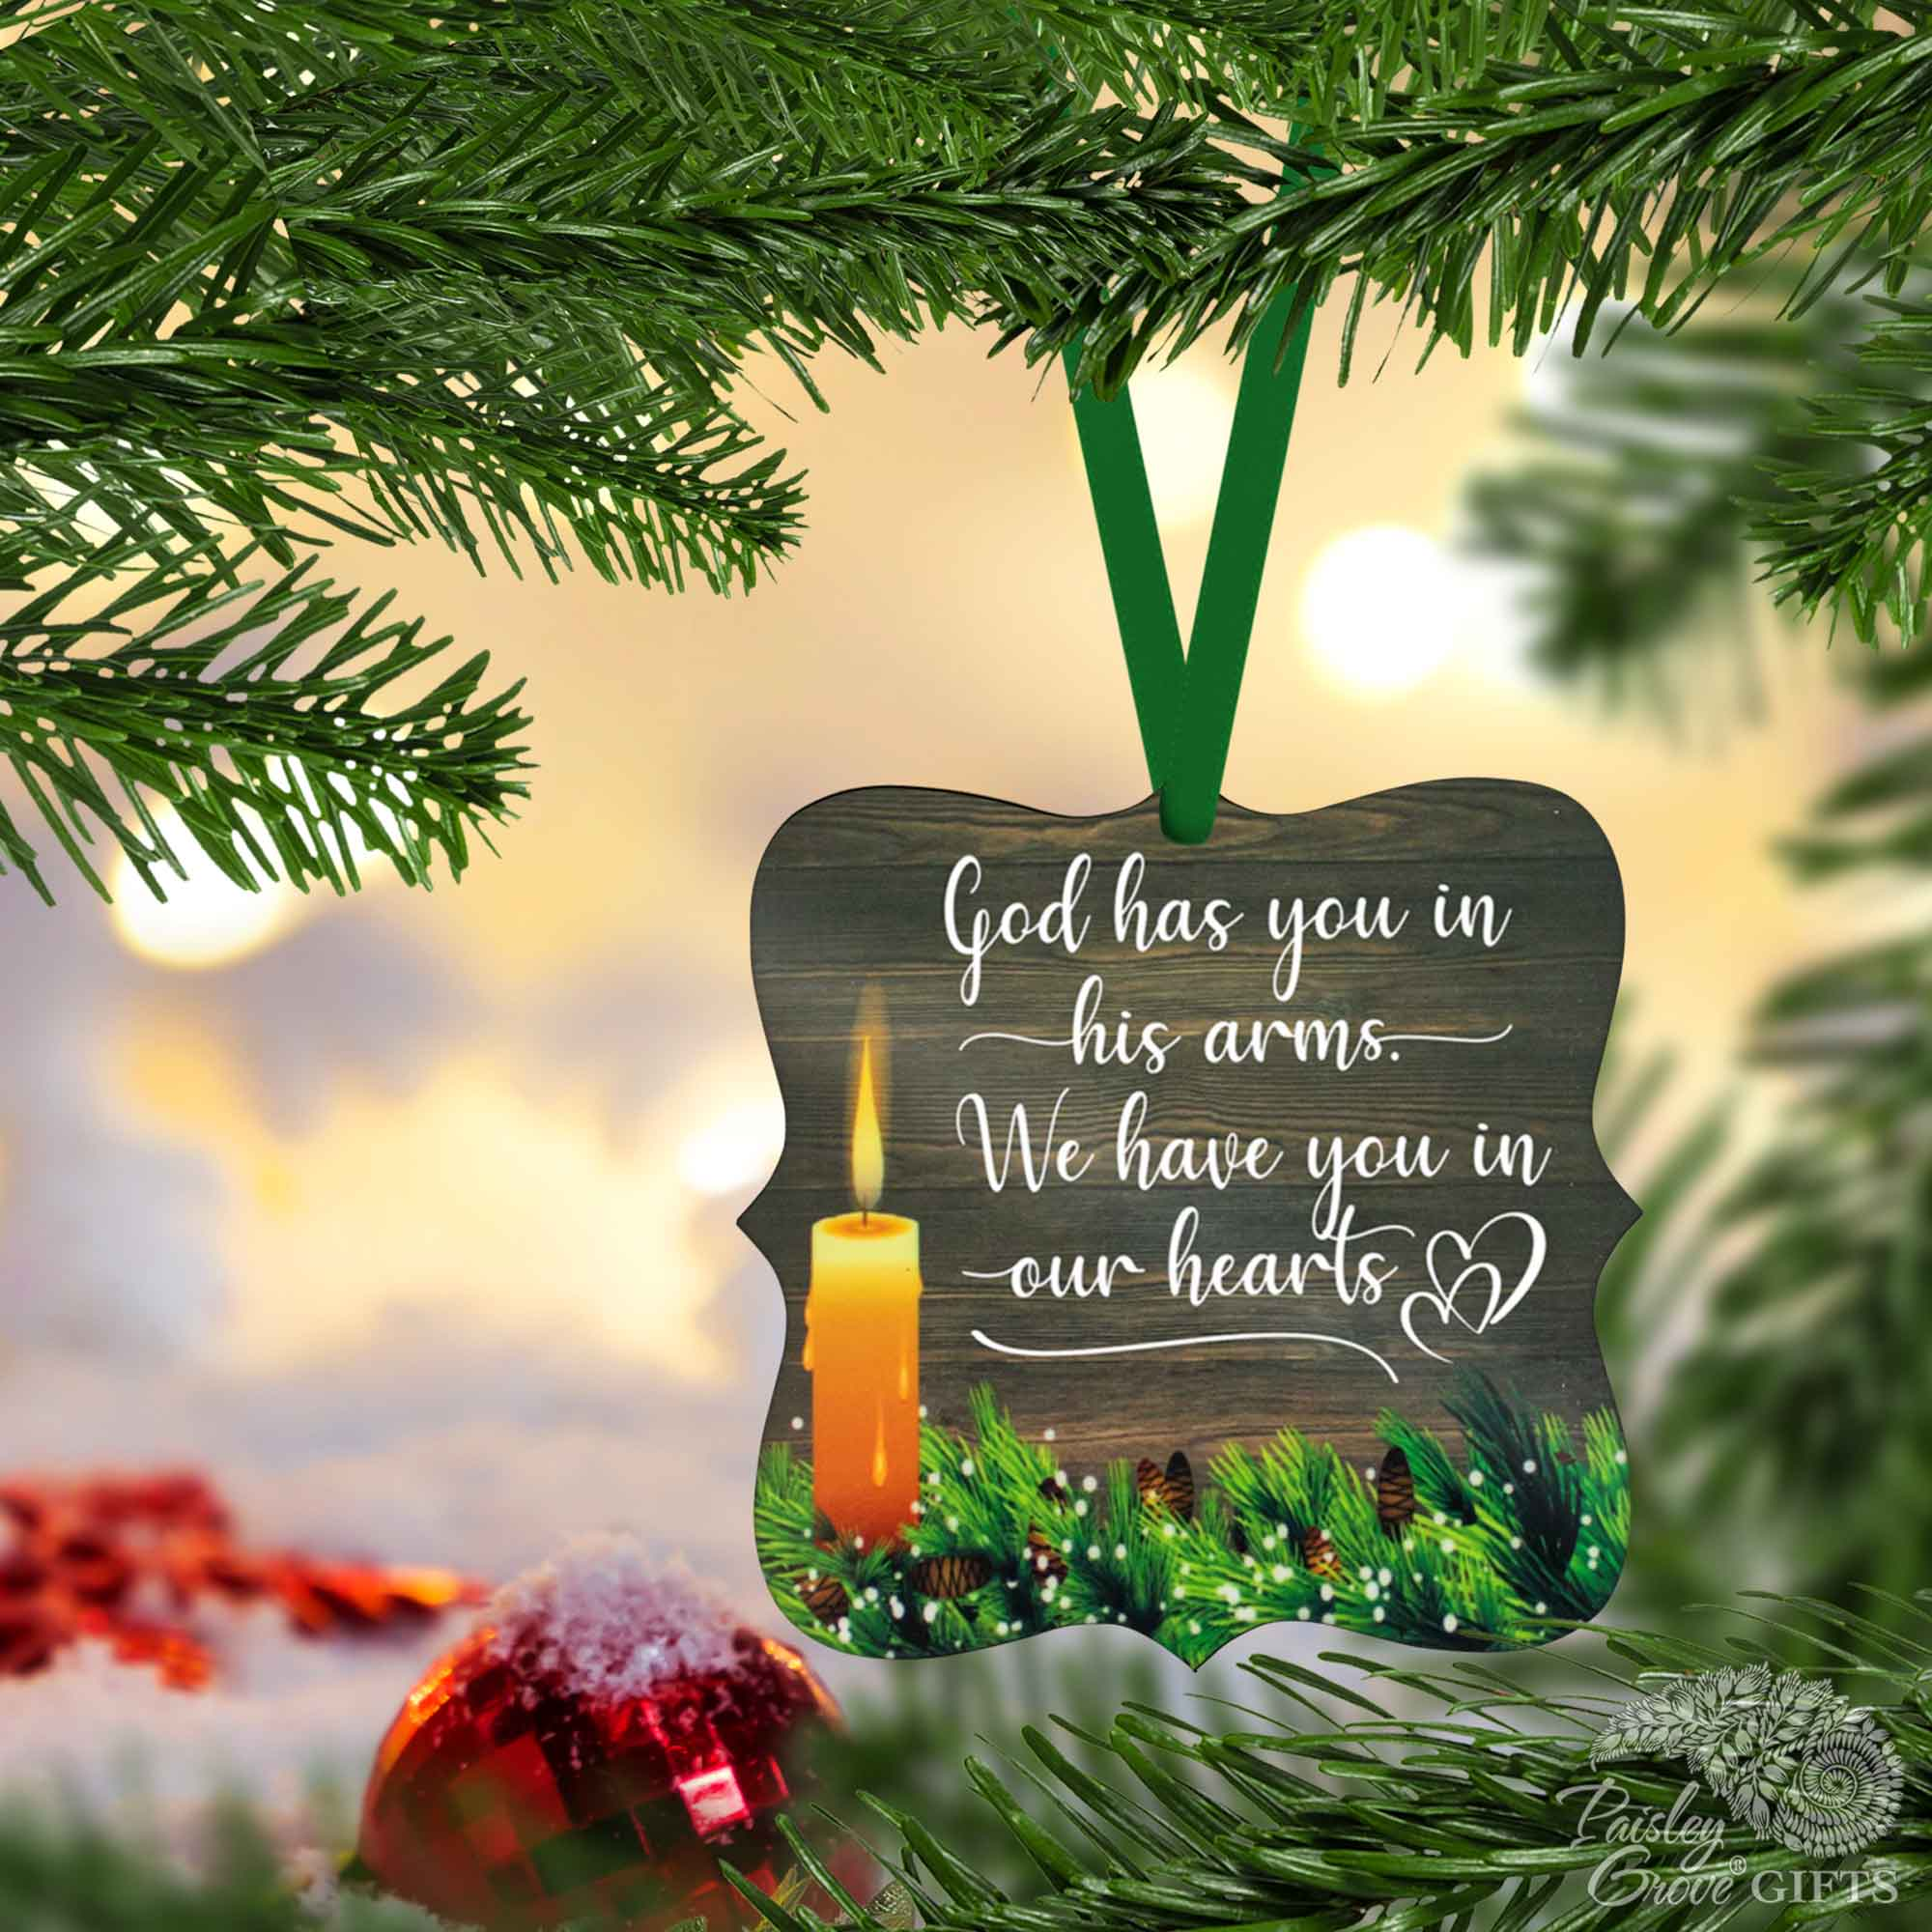 CopyrightPaisleyGroveGIFTS S508c Bereavement Christmas Ornament for Death of Loved One Holiday Decor